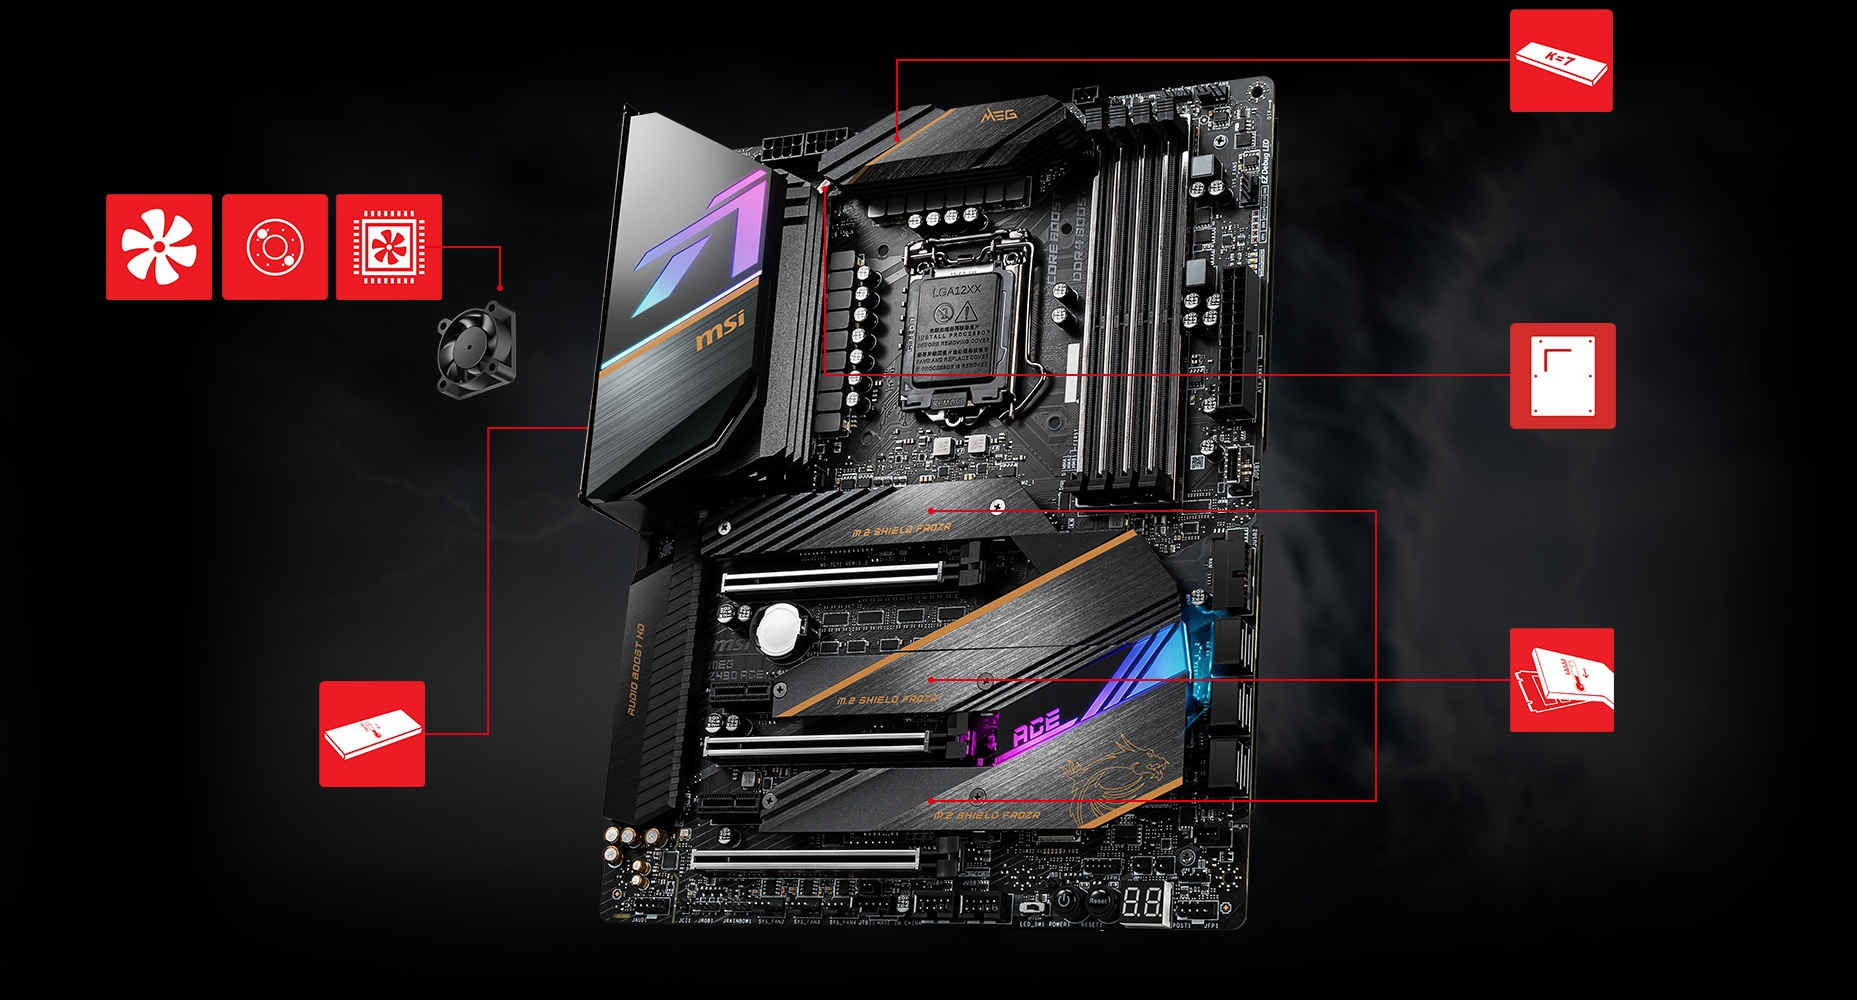 MSI MEG Z490 ACE CORNERSTONE overview